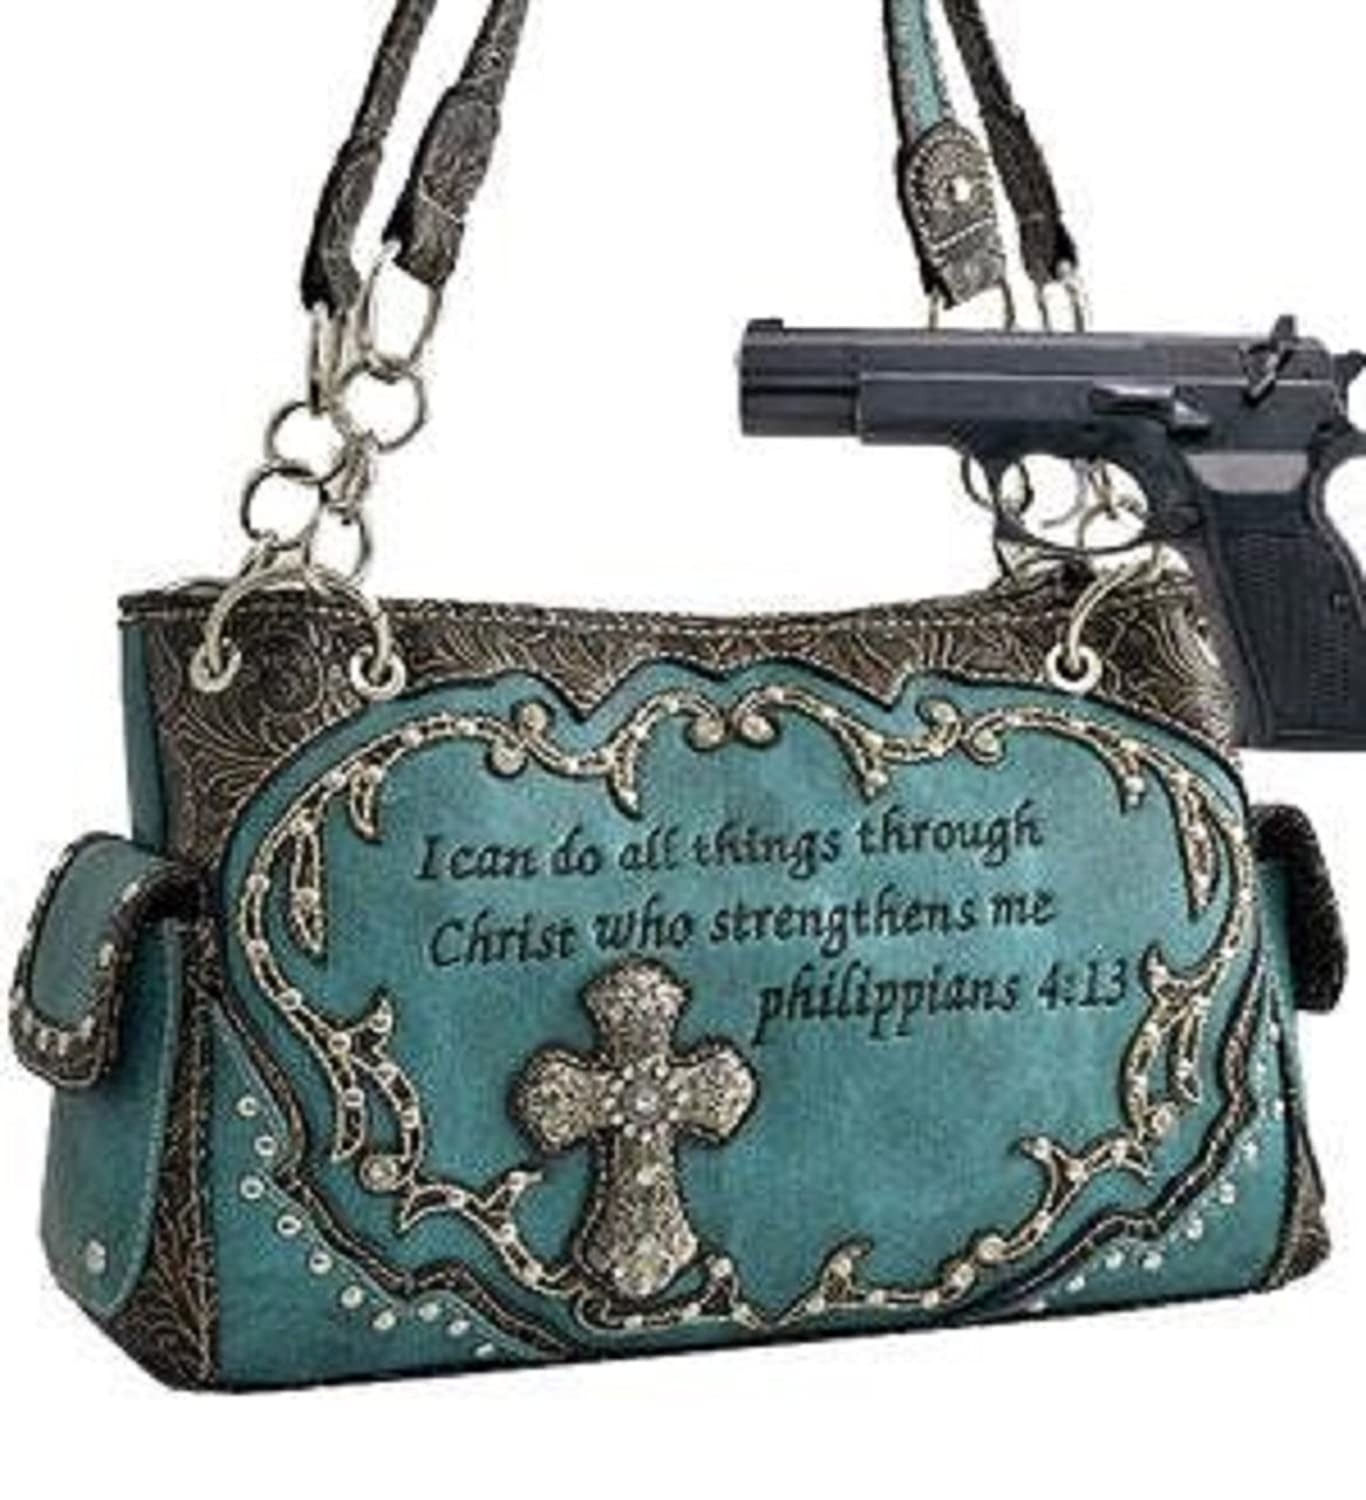 Studded Biblical Verse & Cross Shoulder Bag w/Rhinestone(Concealed Carry Purse) HANDBAG PURSE - TURQUOISE